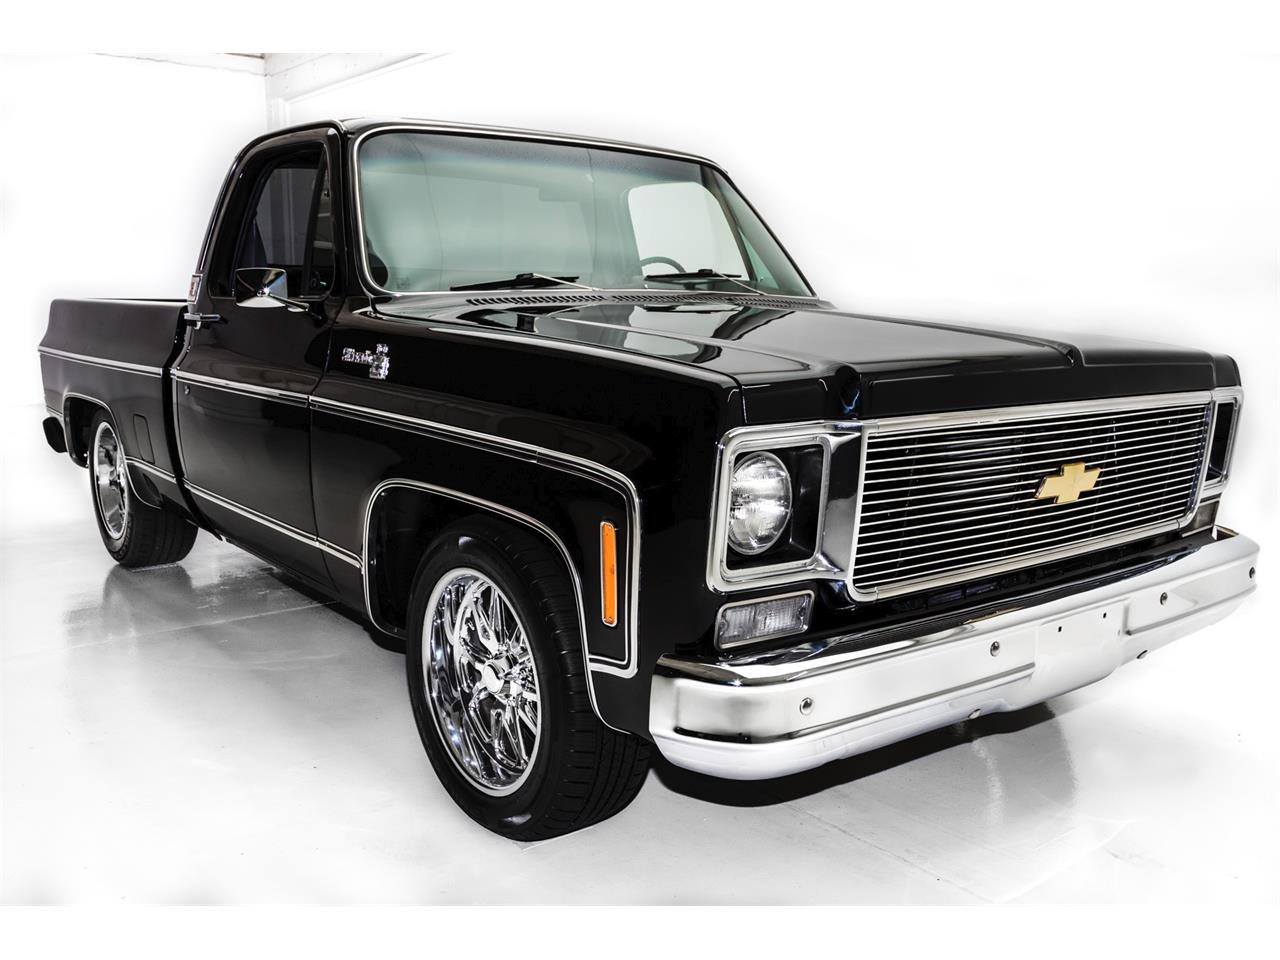 Large Picture of '78 Chevrolet Pickup - $29,900.00 - LD4Q